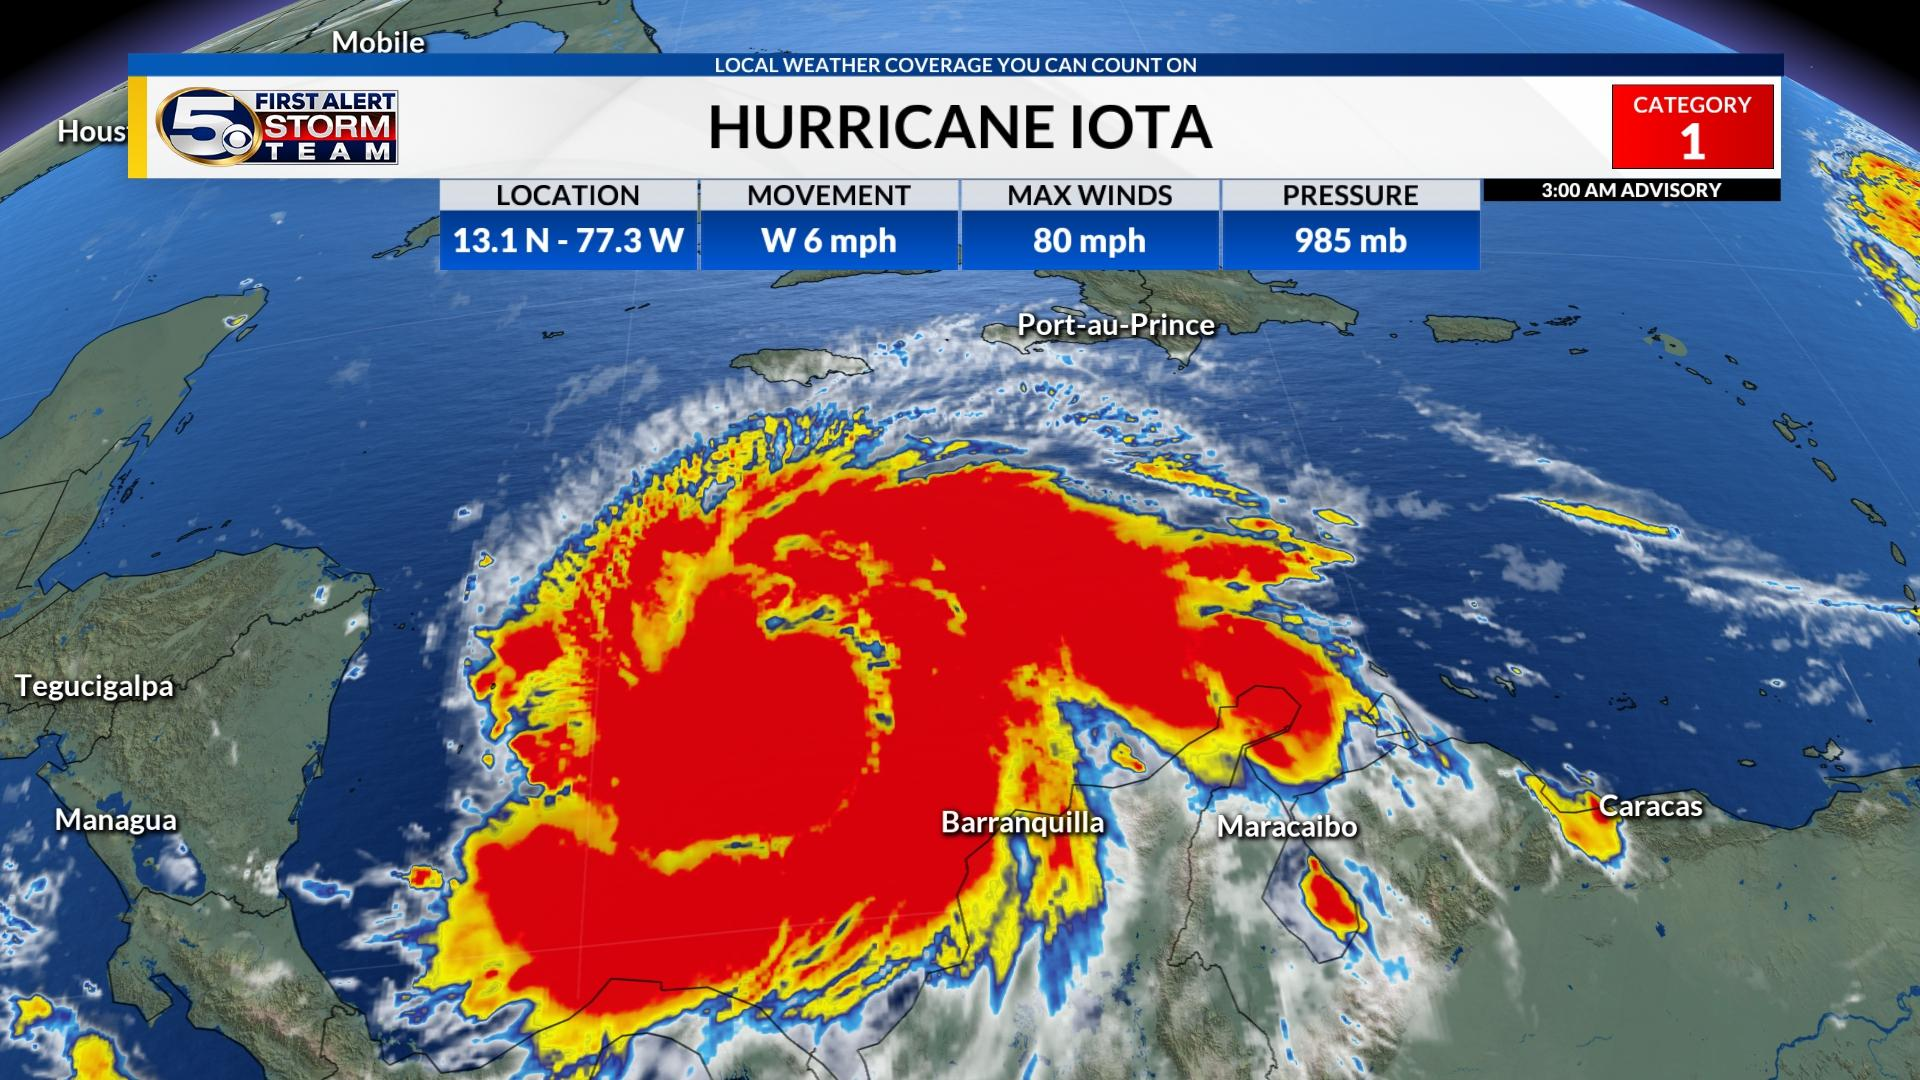 Iota becomes a hurricane as it heads towards Central America, expected to intensify further